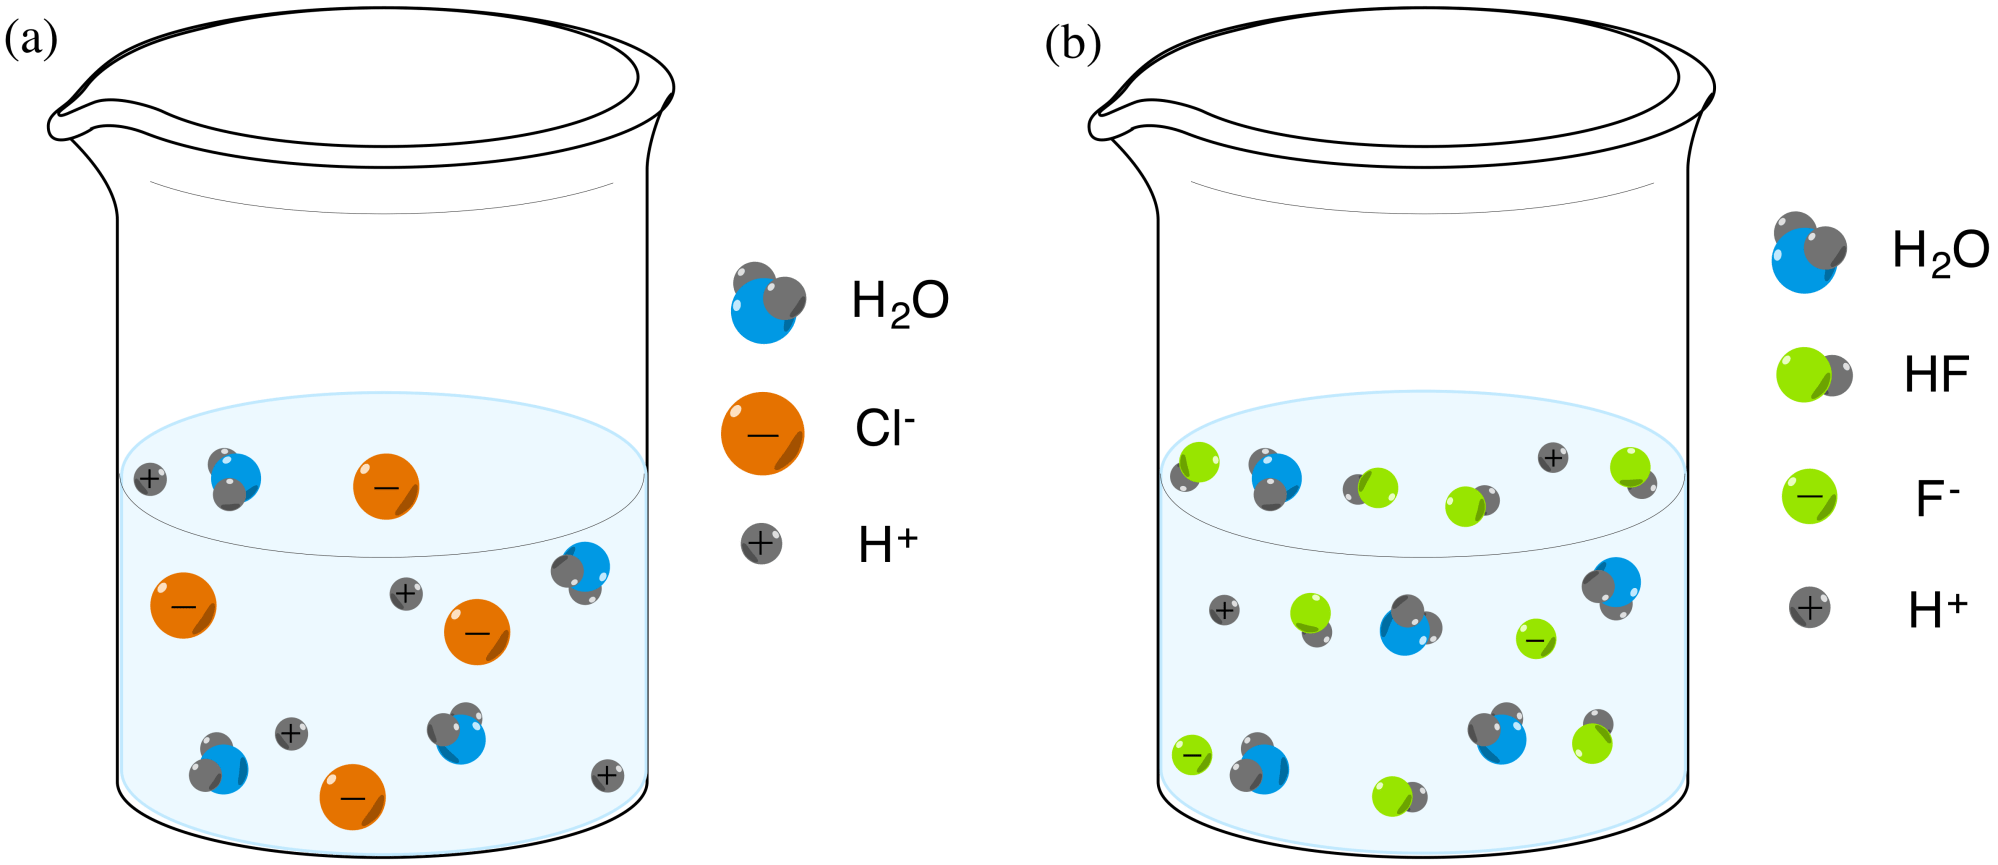 hight resolution of on left zoomed in representation of hydrochloric acid solution where the acid is